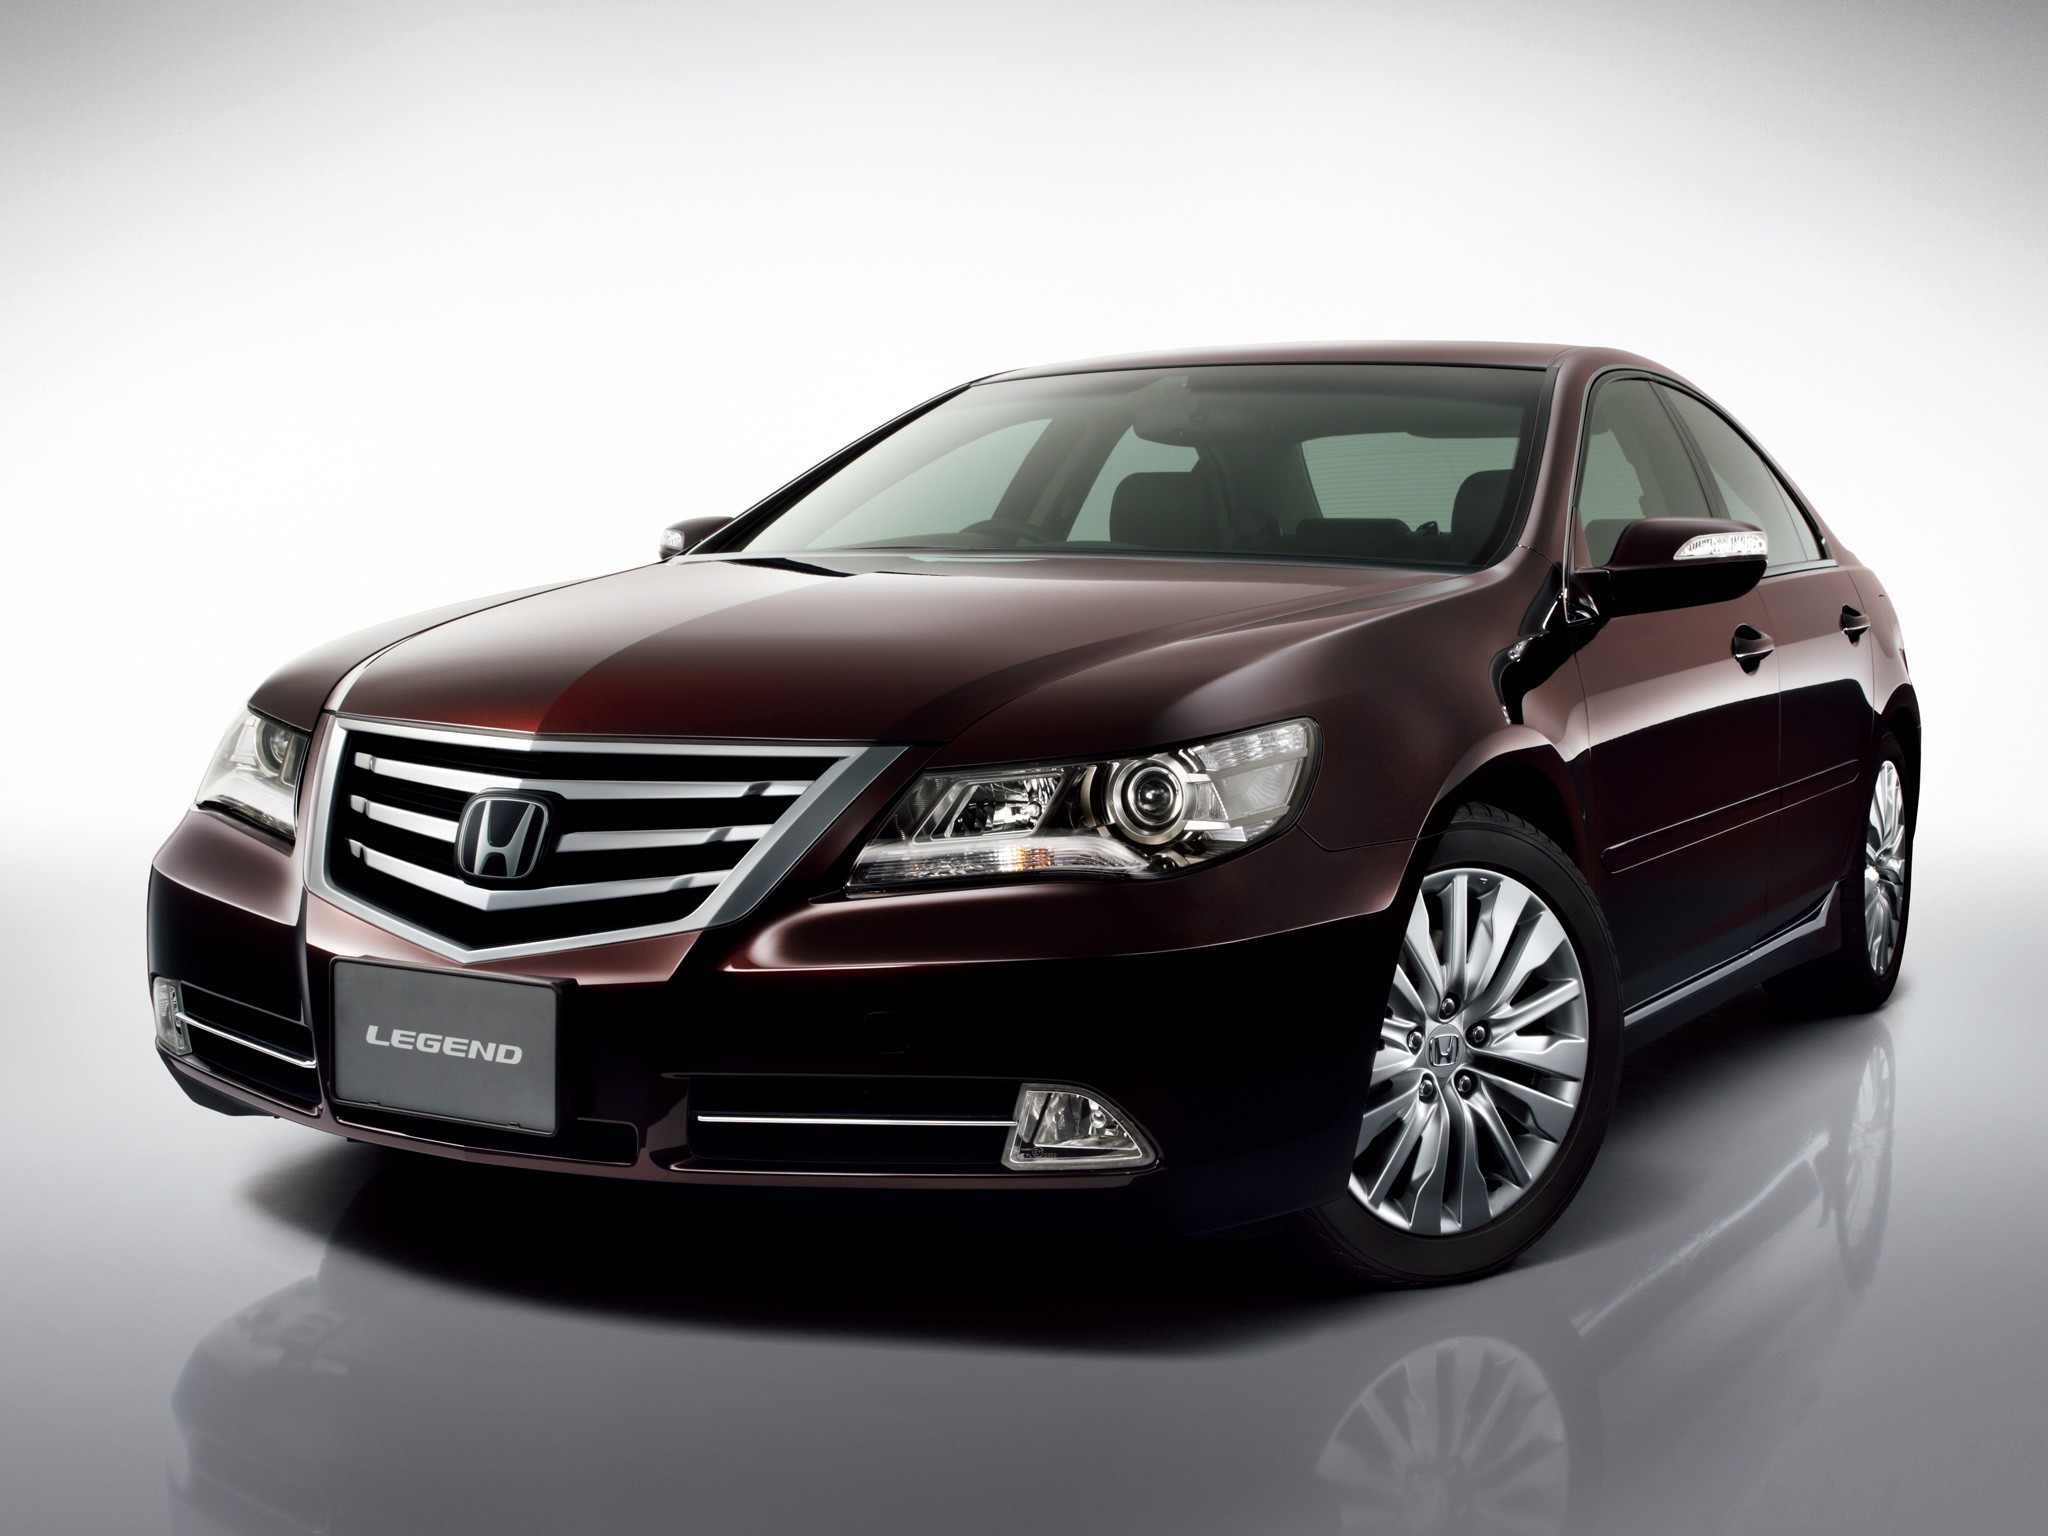 HONDA Legend specs & photos - 2009, 2010, 2011, 2012 ...